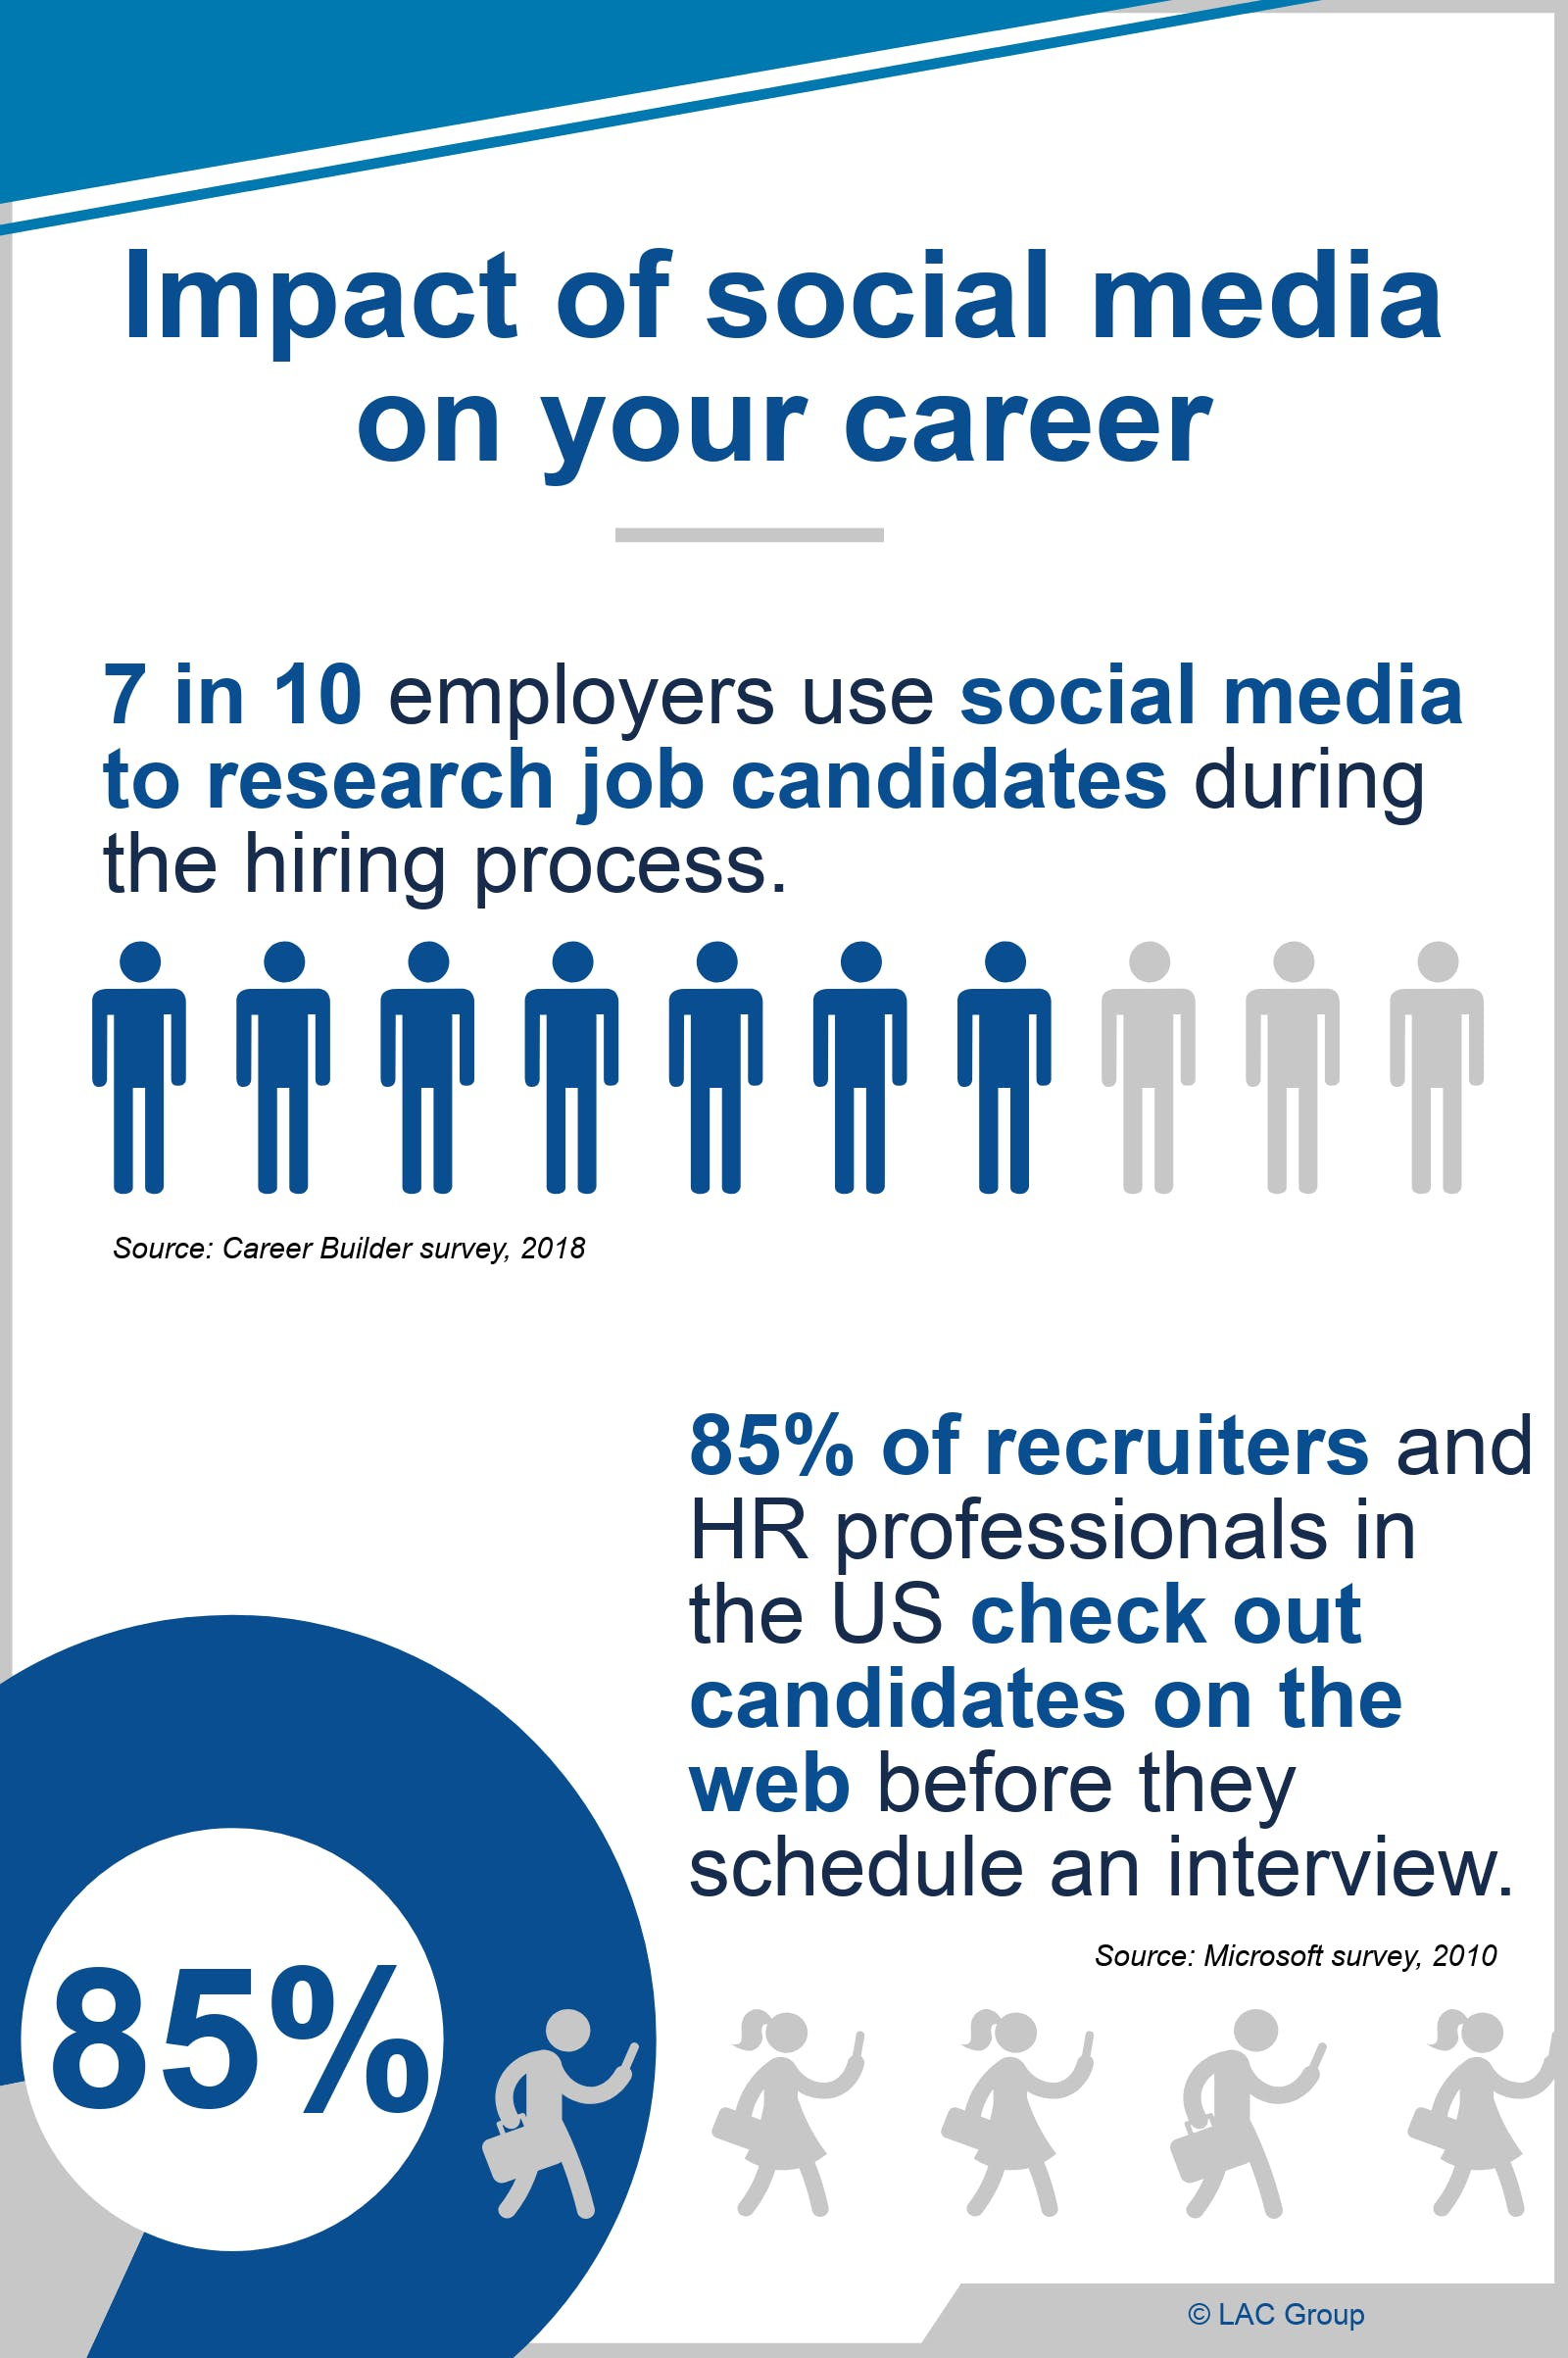 Social media impact on career